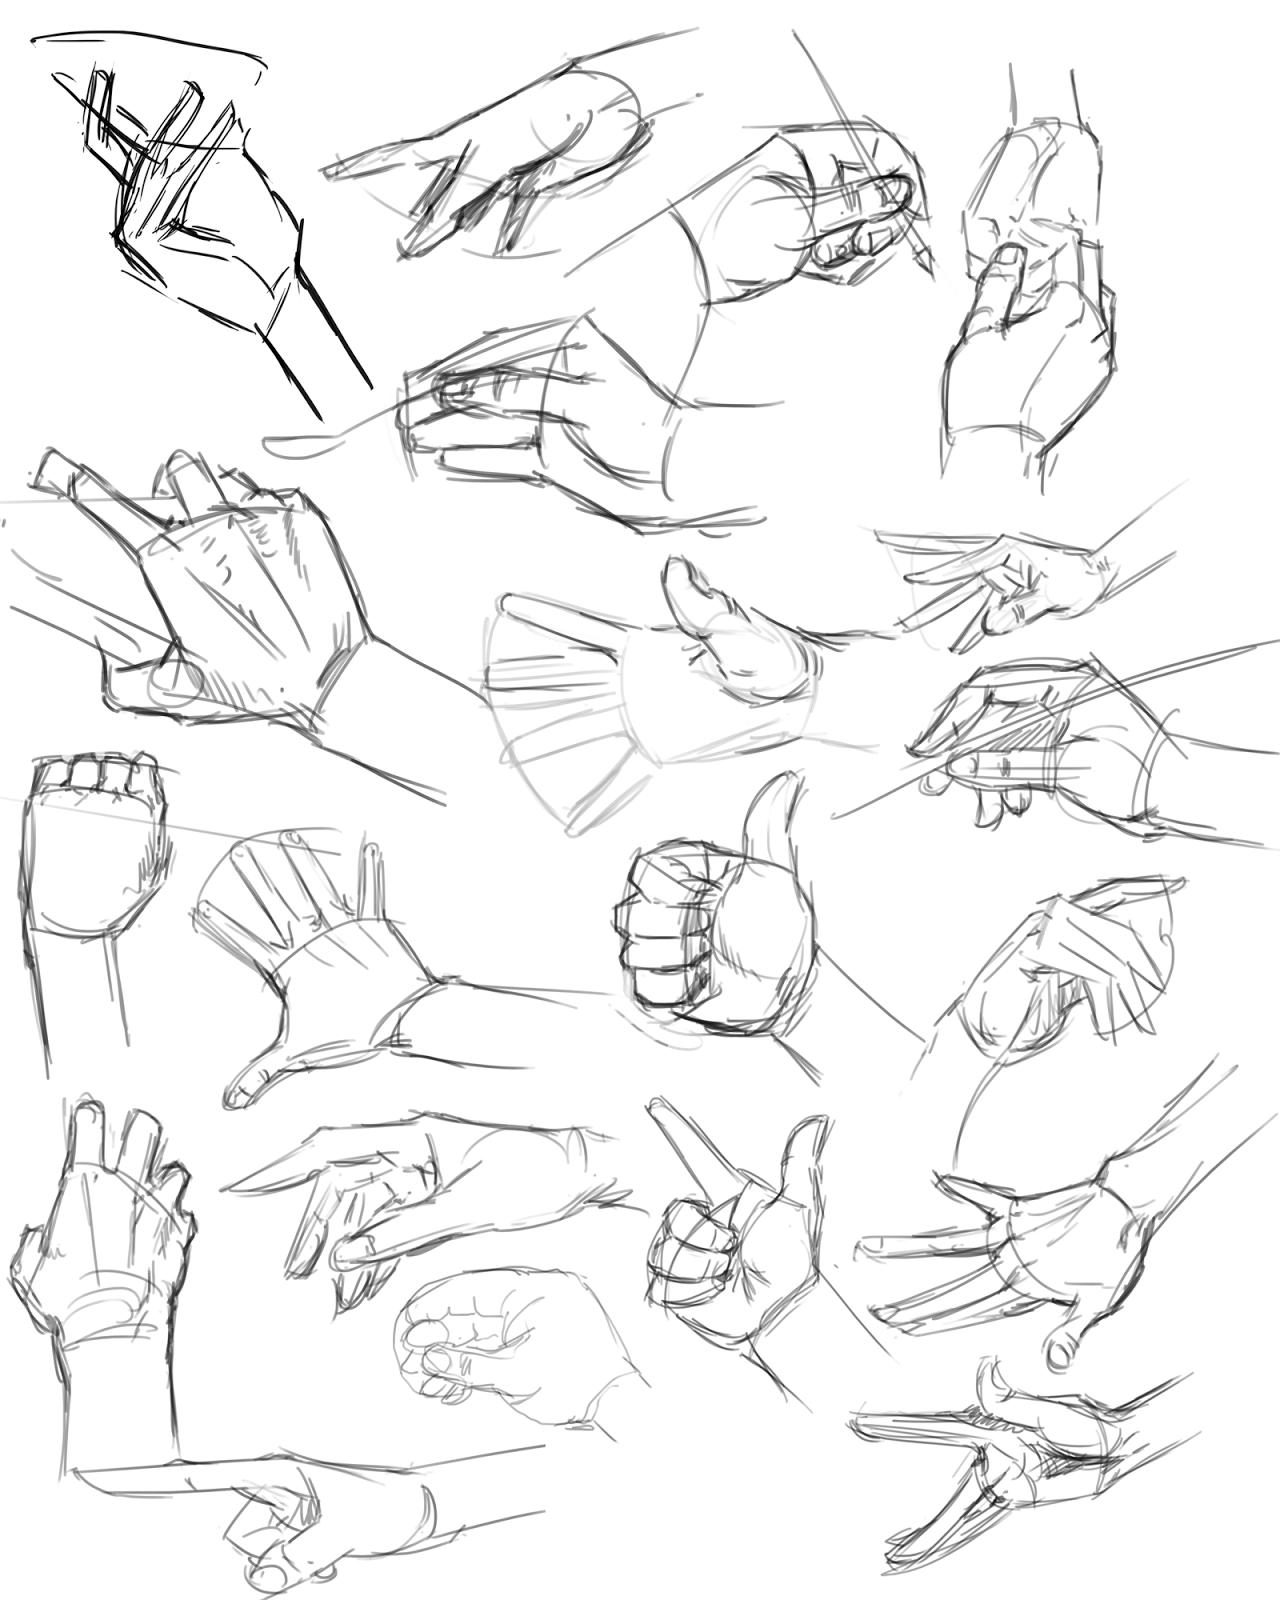 [Image: 2017_01_26_hands.PNG]